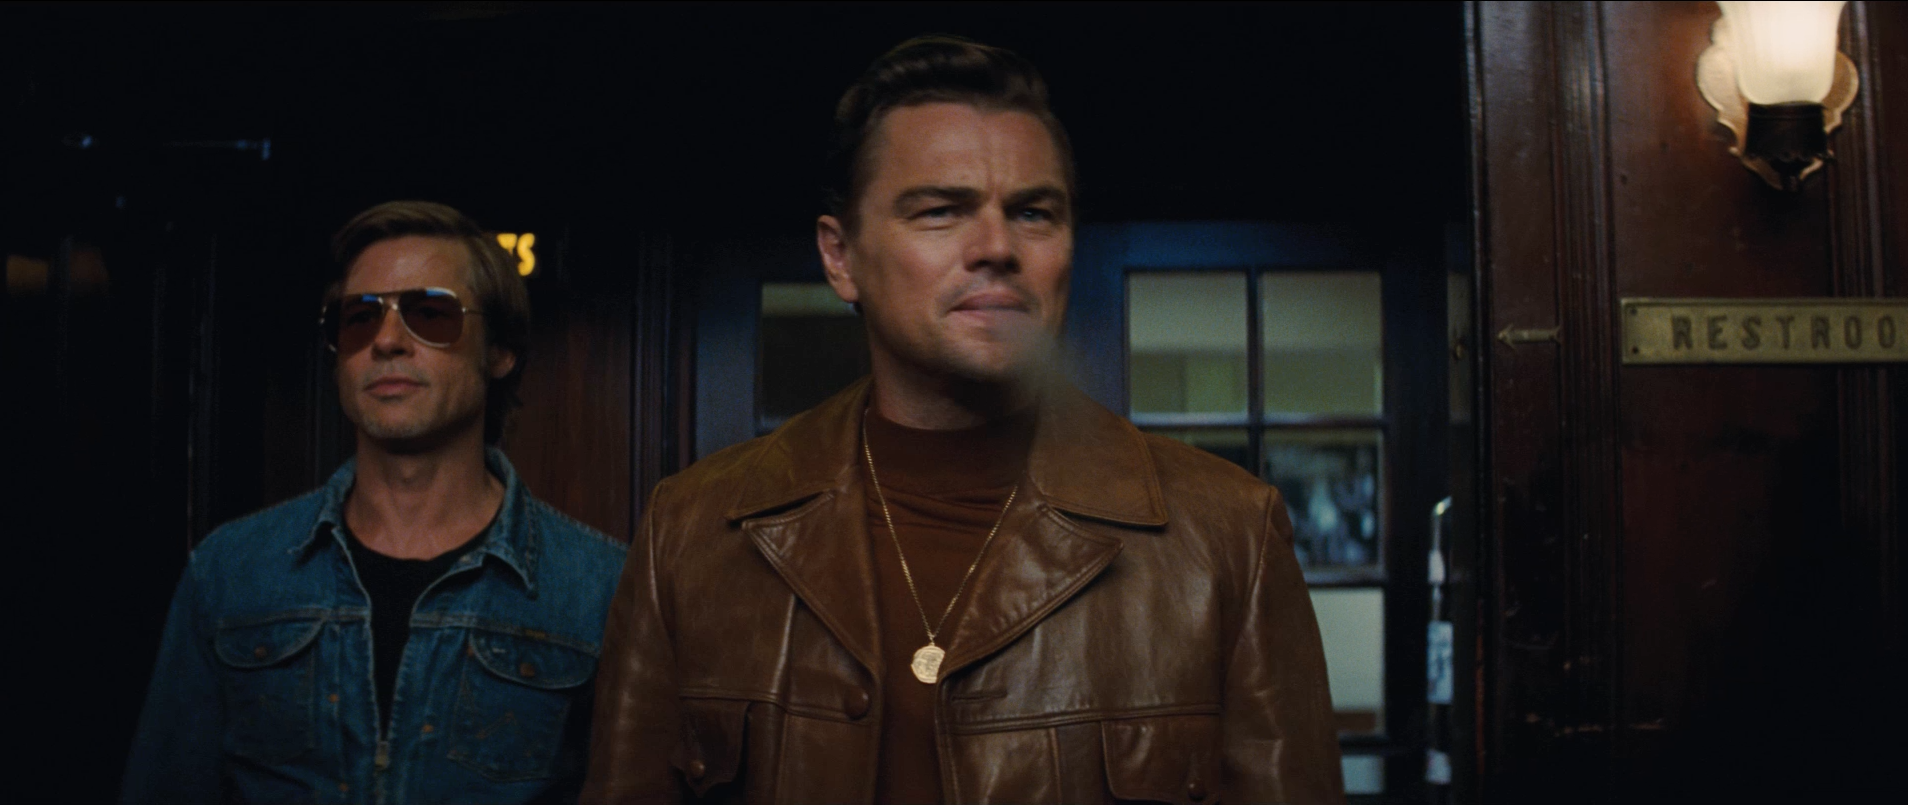 Watch The Full 'Once Upon A Time In... Hollywood' Trailer